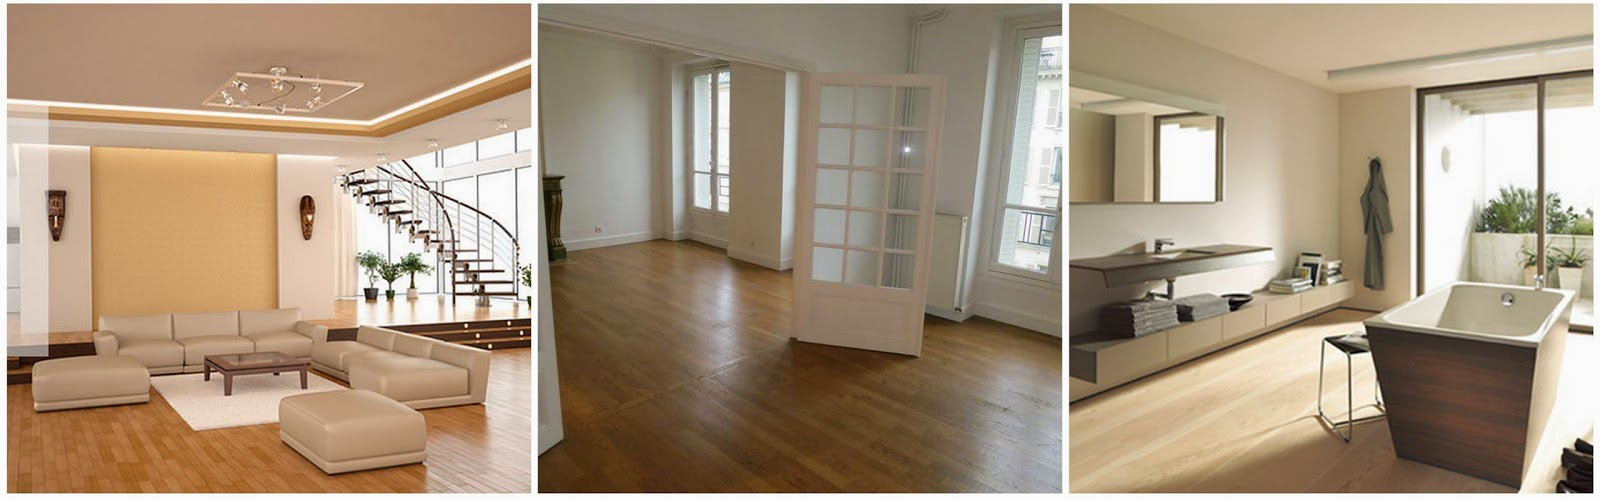 Travaux appartement 92300 levallois perret